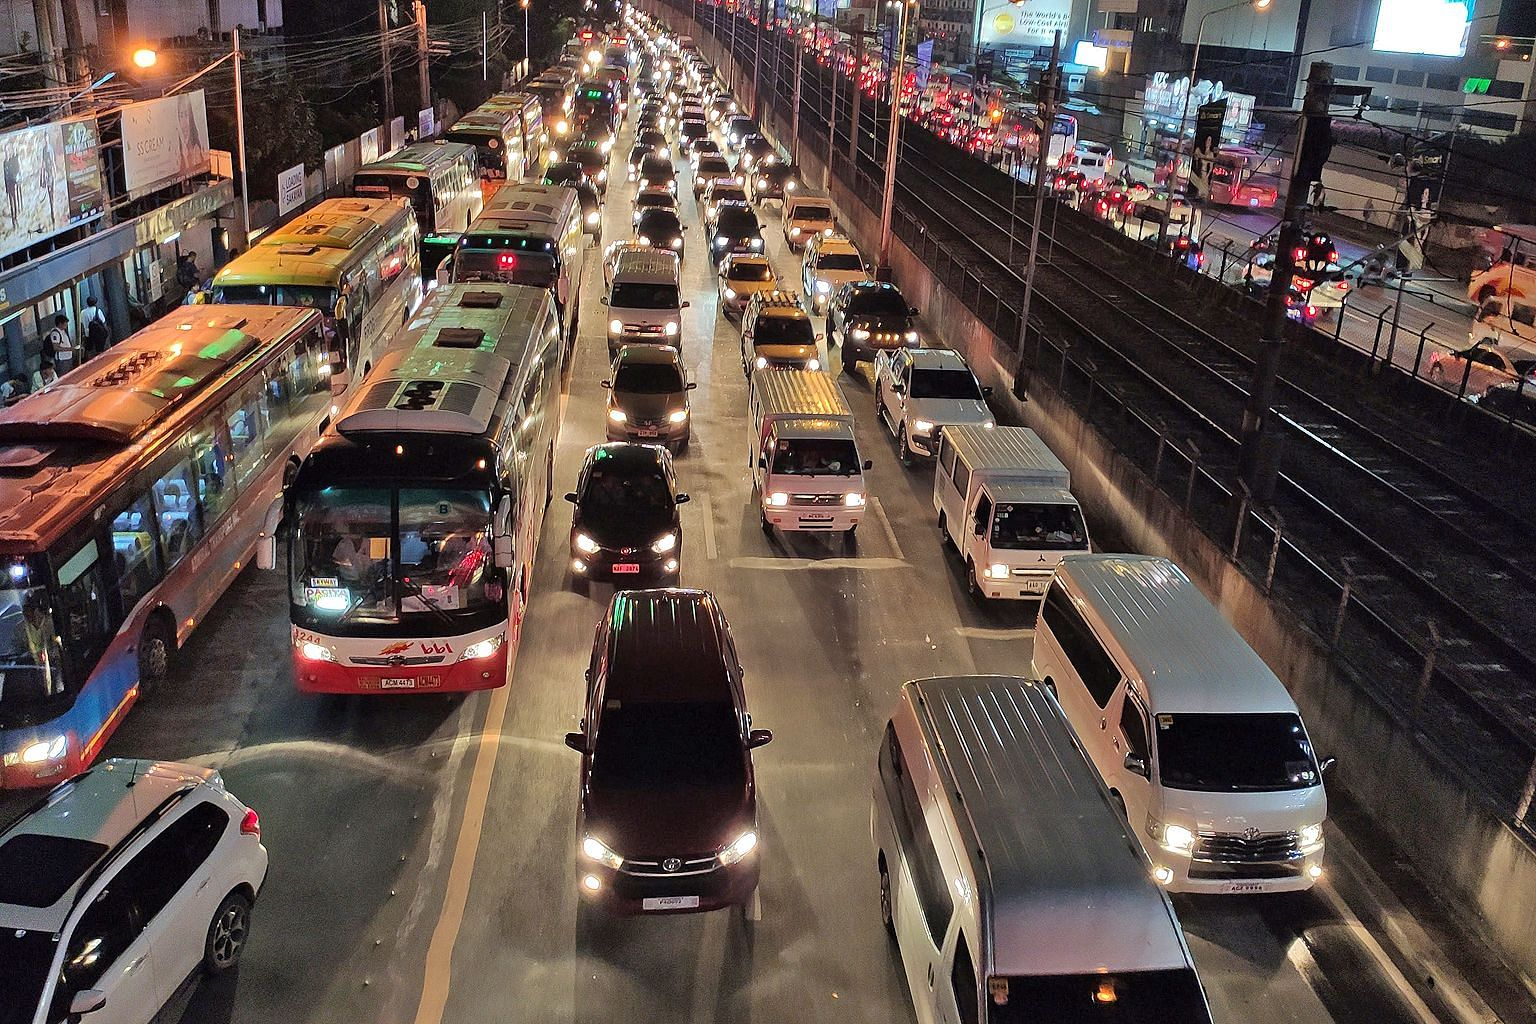 Traffic in Metro Manila crawls at a pace of 4.9 minutes per kilometre, according to the Google-owned transport app Waze. Tight security is likely to result in even worse traffic conditions during the SEA Games. ST PHOTO: RAUL DANCEL